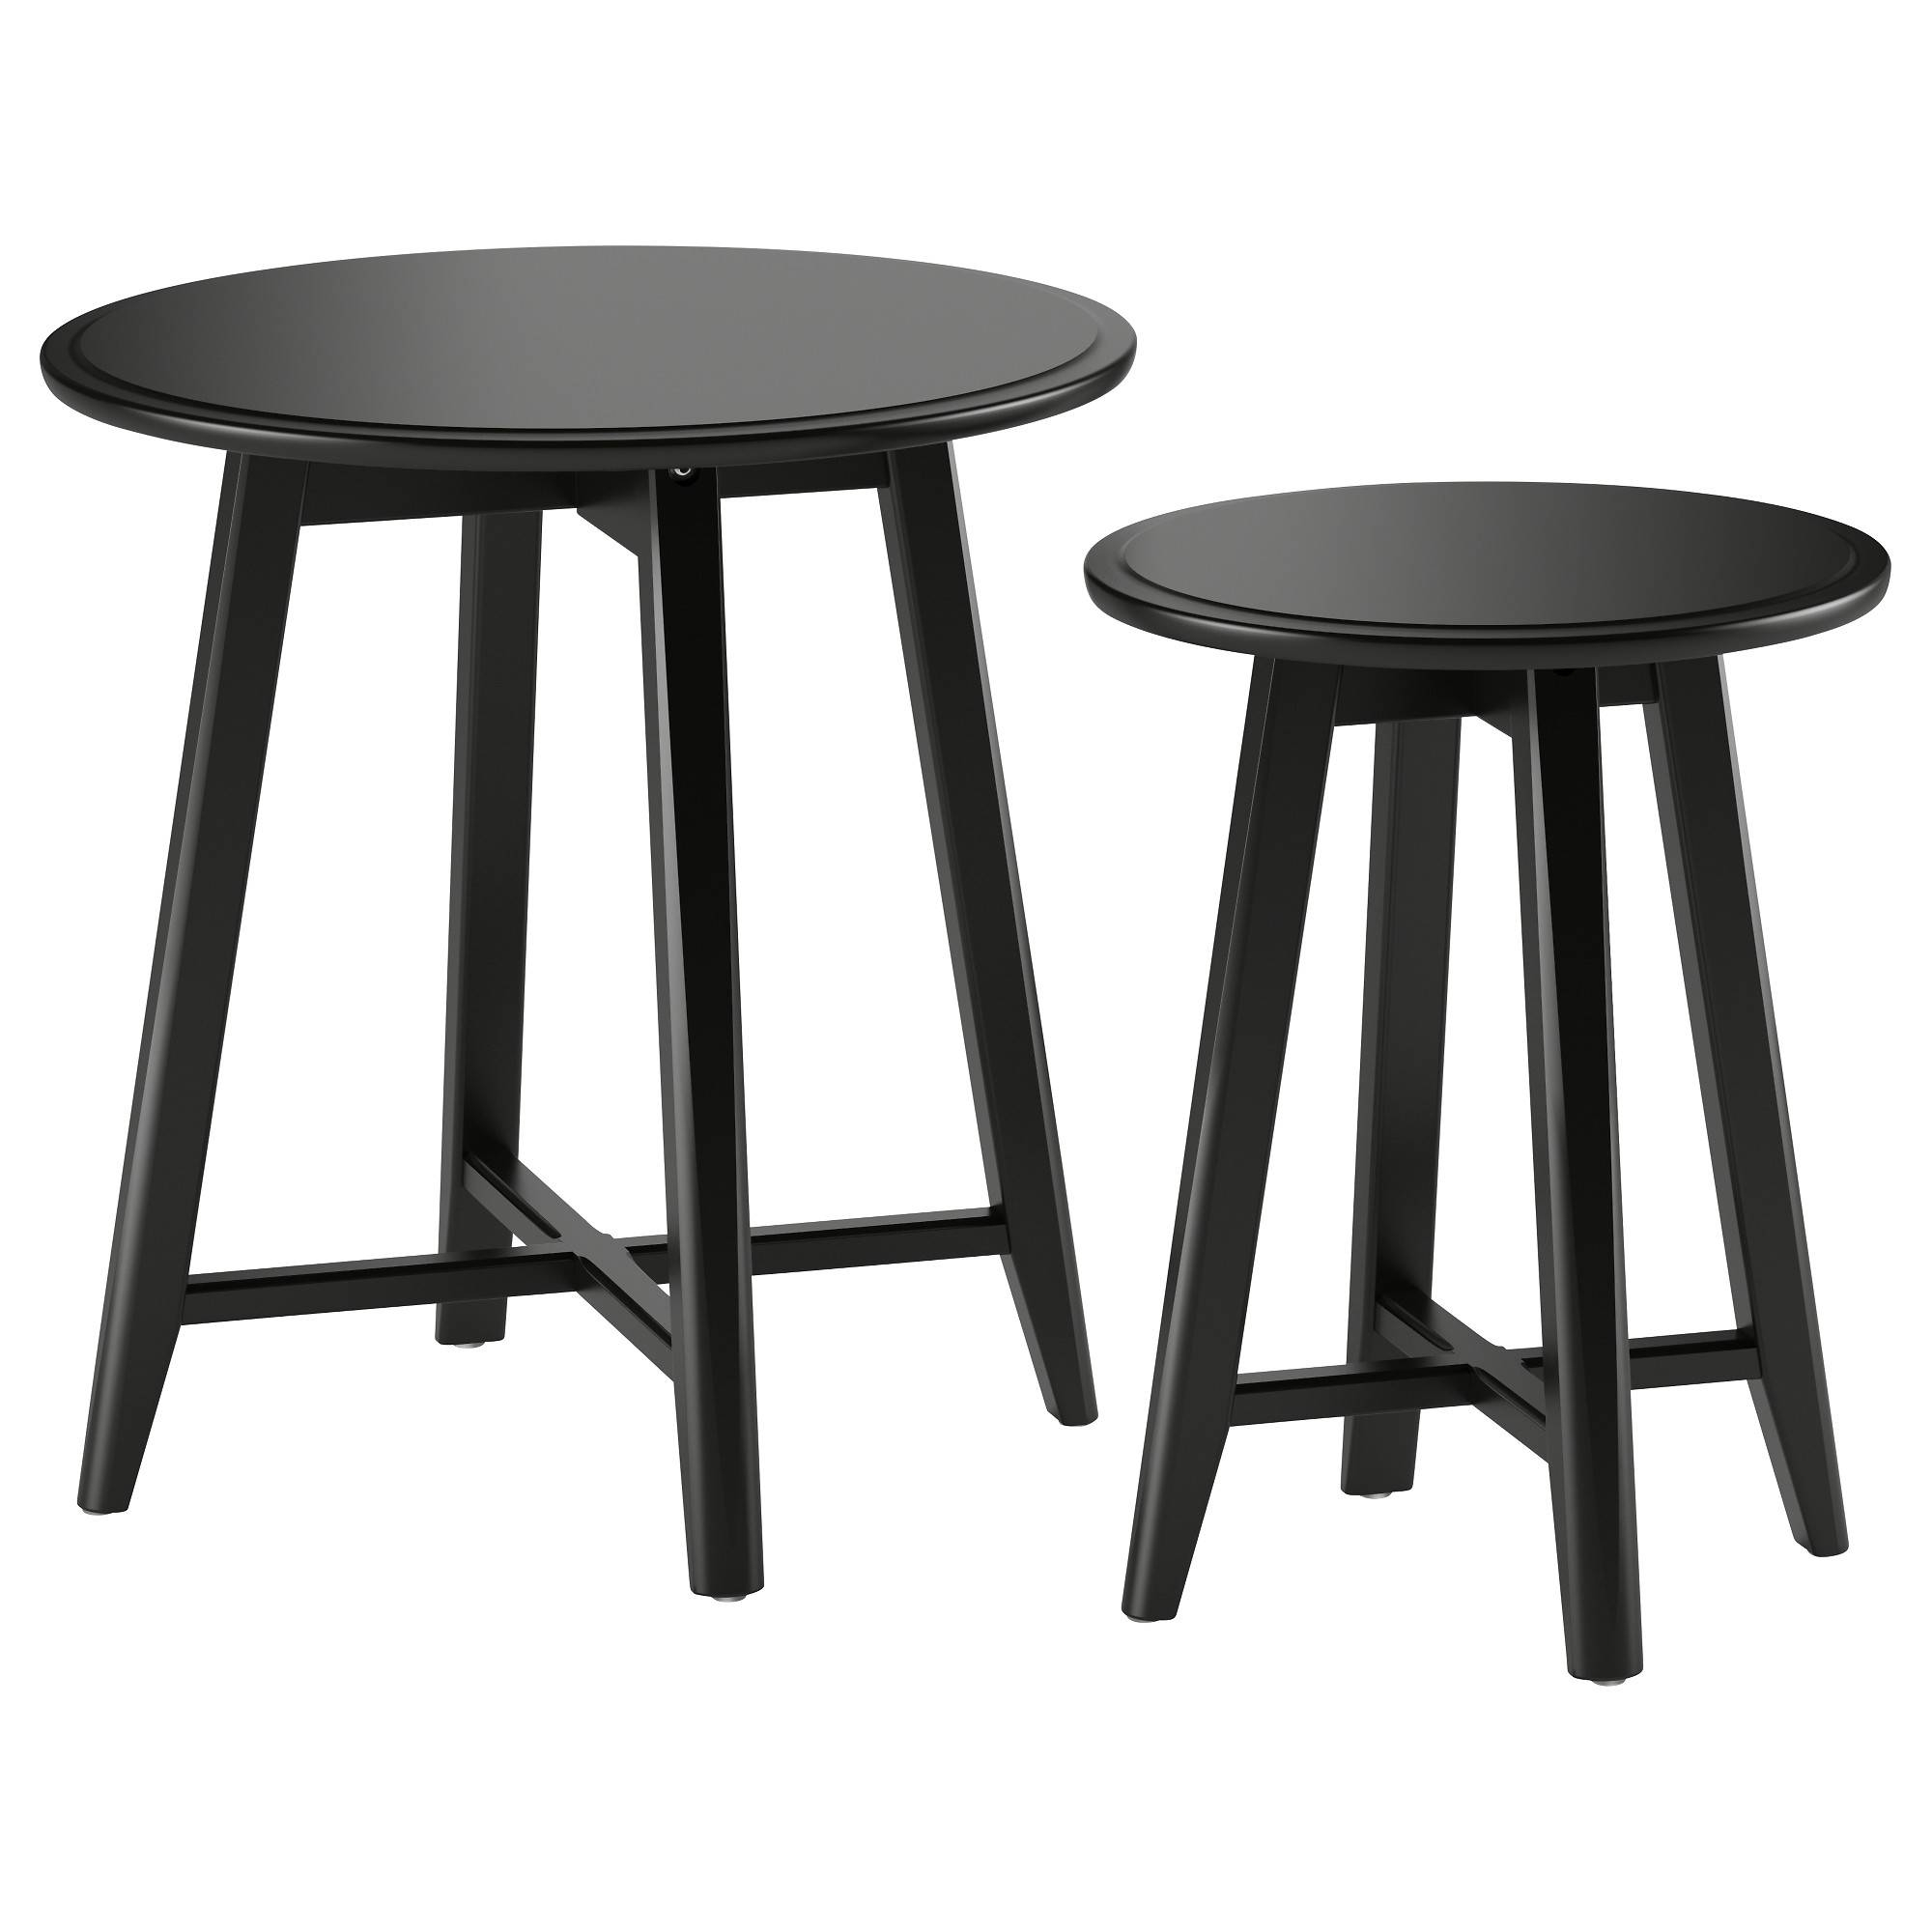 Kragsta Nest Of Tables, Set Of 2 Black - Ikea intended for Nest Coffee Tables (Image 16 of 30)